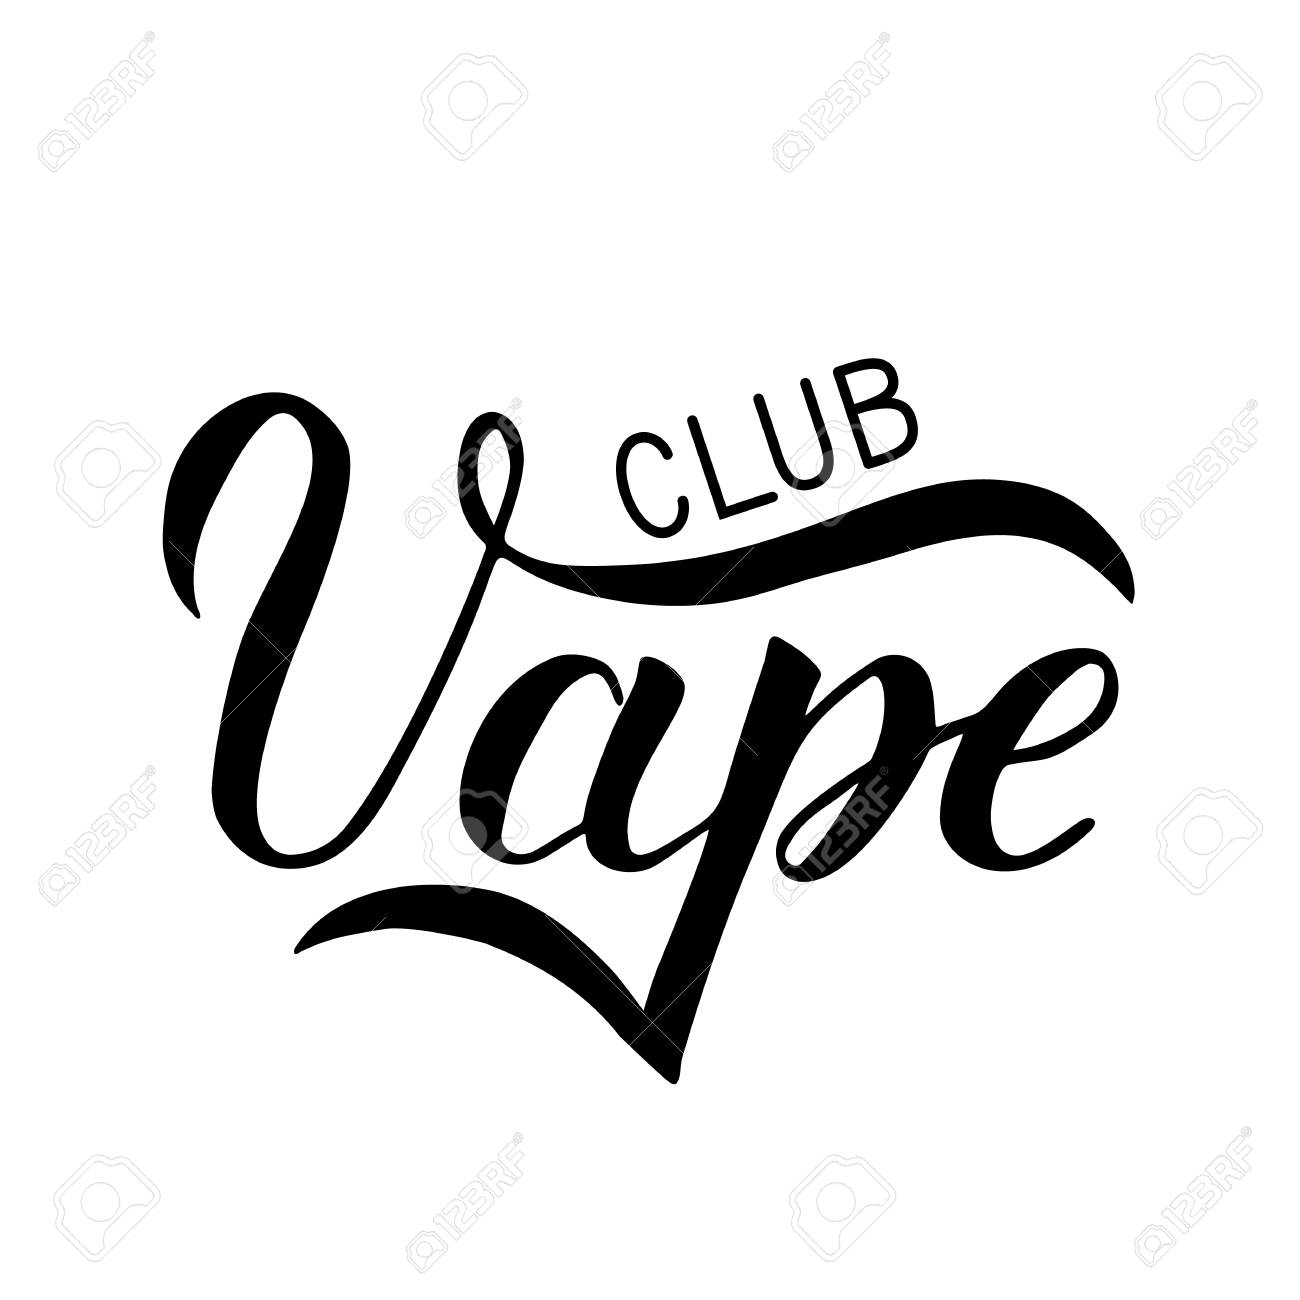 Vape Club hand written isolated on white background  Calligraphy